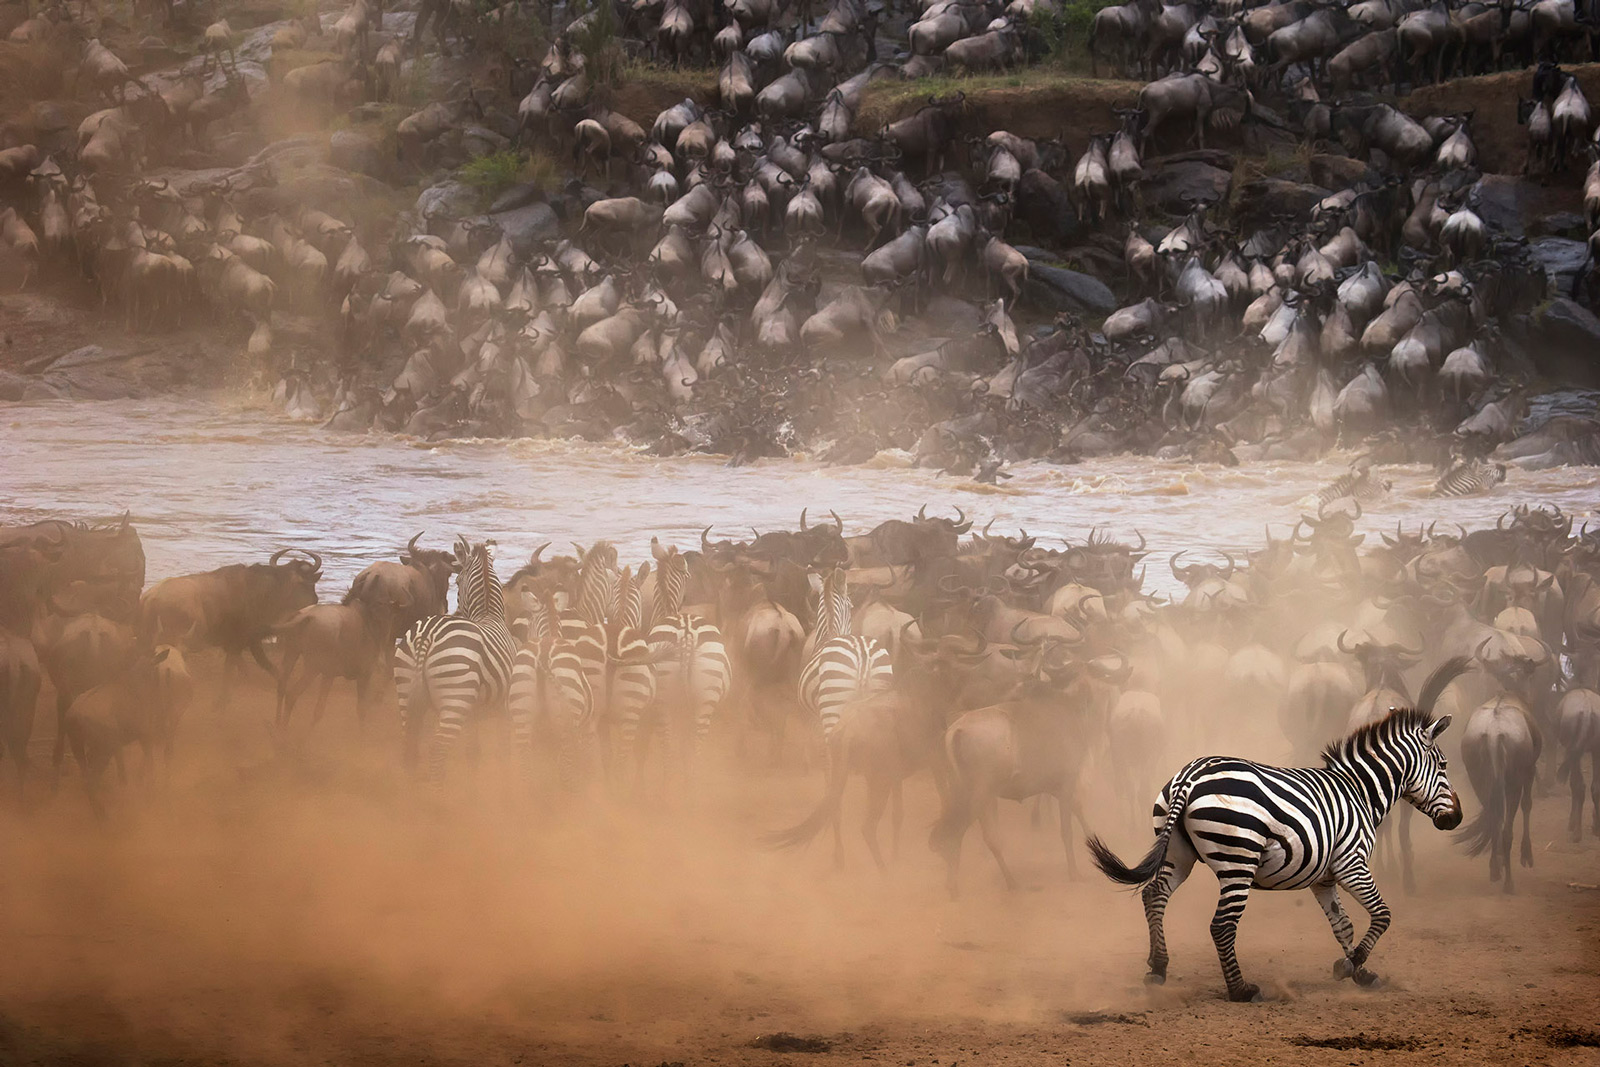 Chaos ensues during the great migration in the Maasai Mara National Reserve, Kenya ©Panos Laskarakis